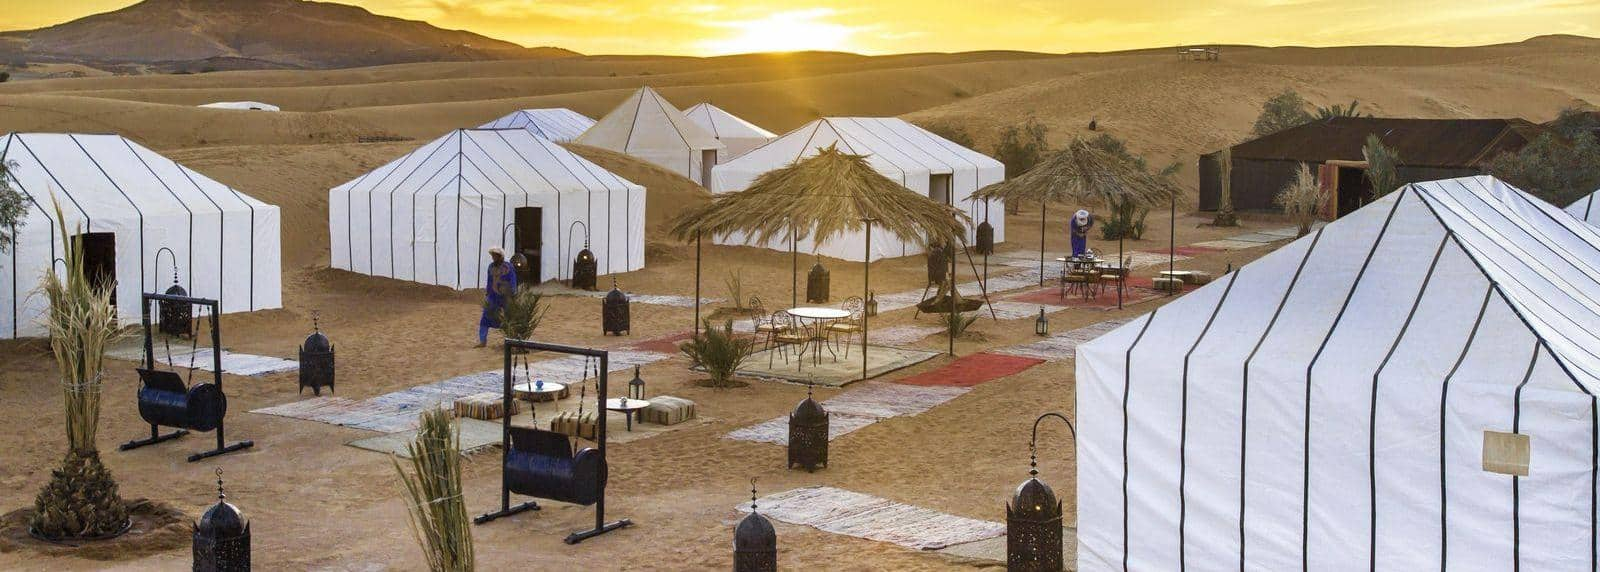 Luxury desert camp morocco